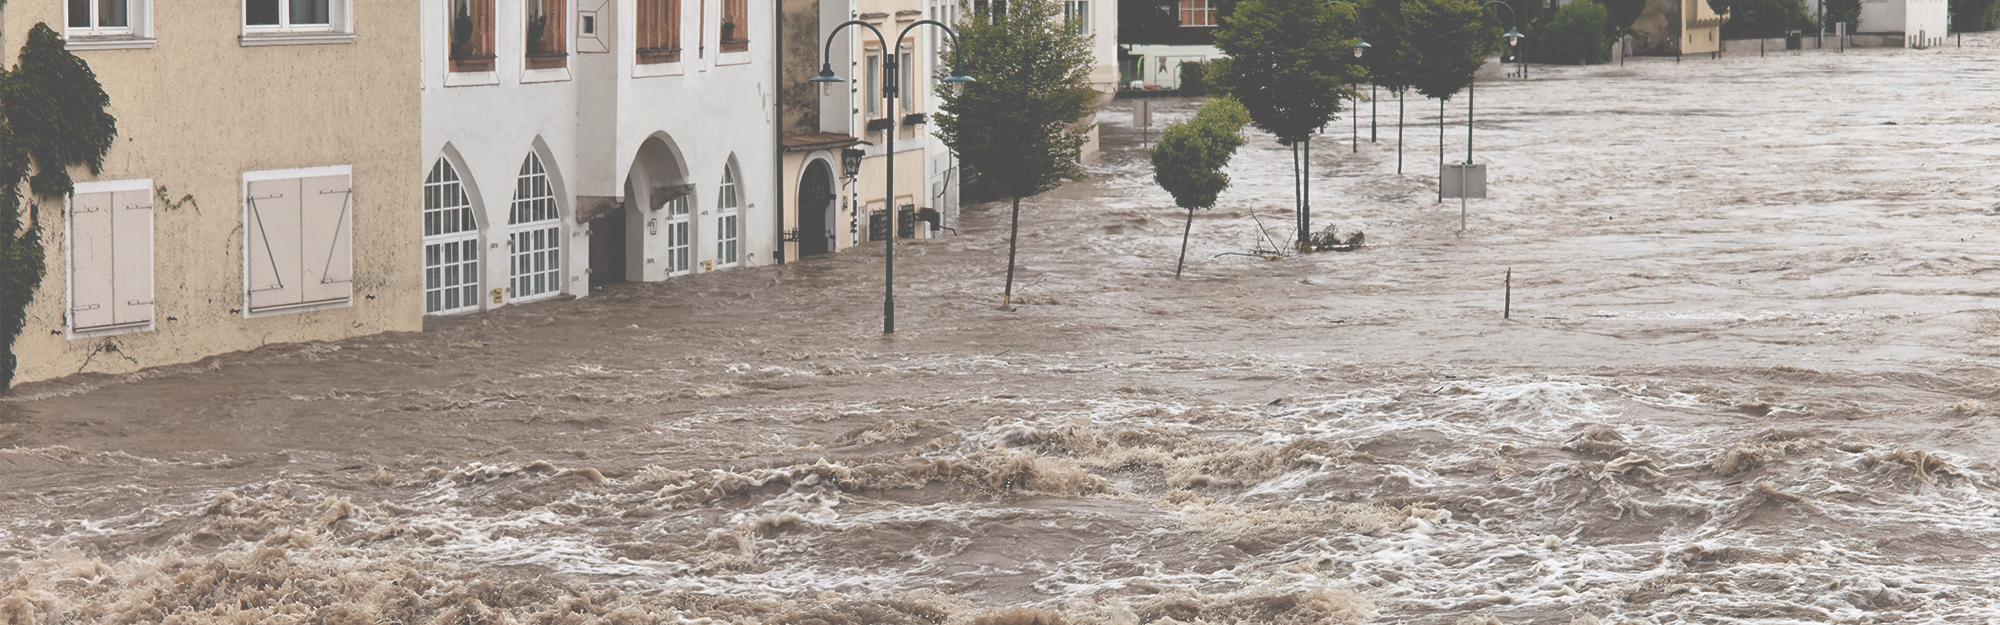 Biz2Credit: Disaster Loans Can Help Clients Make it Through Rough Financial Waters